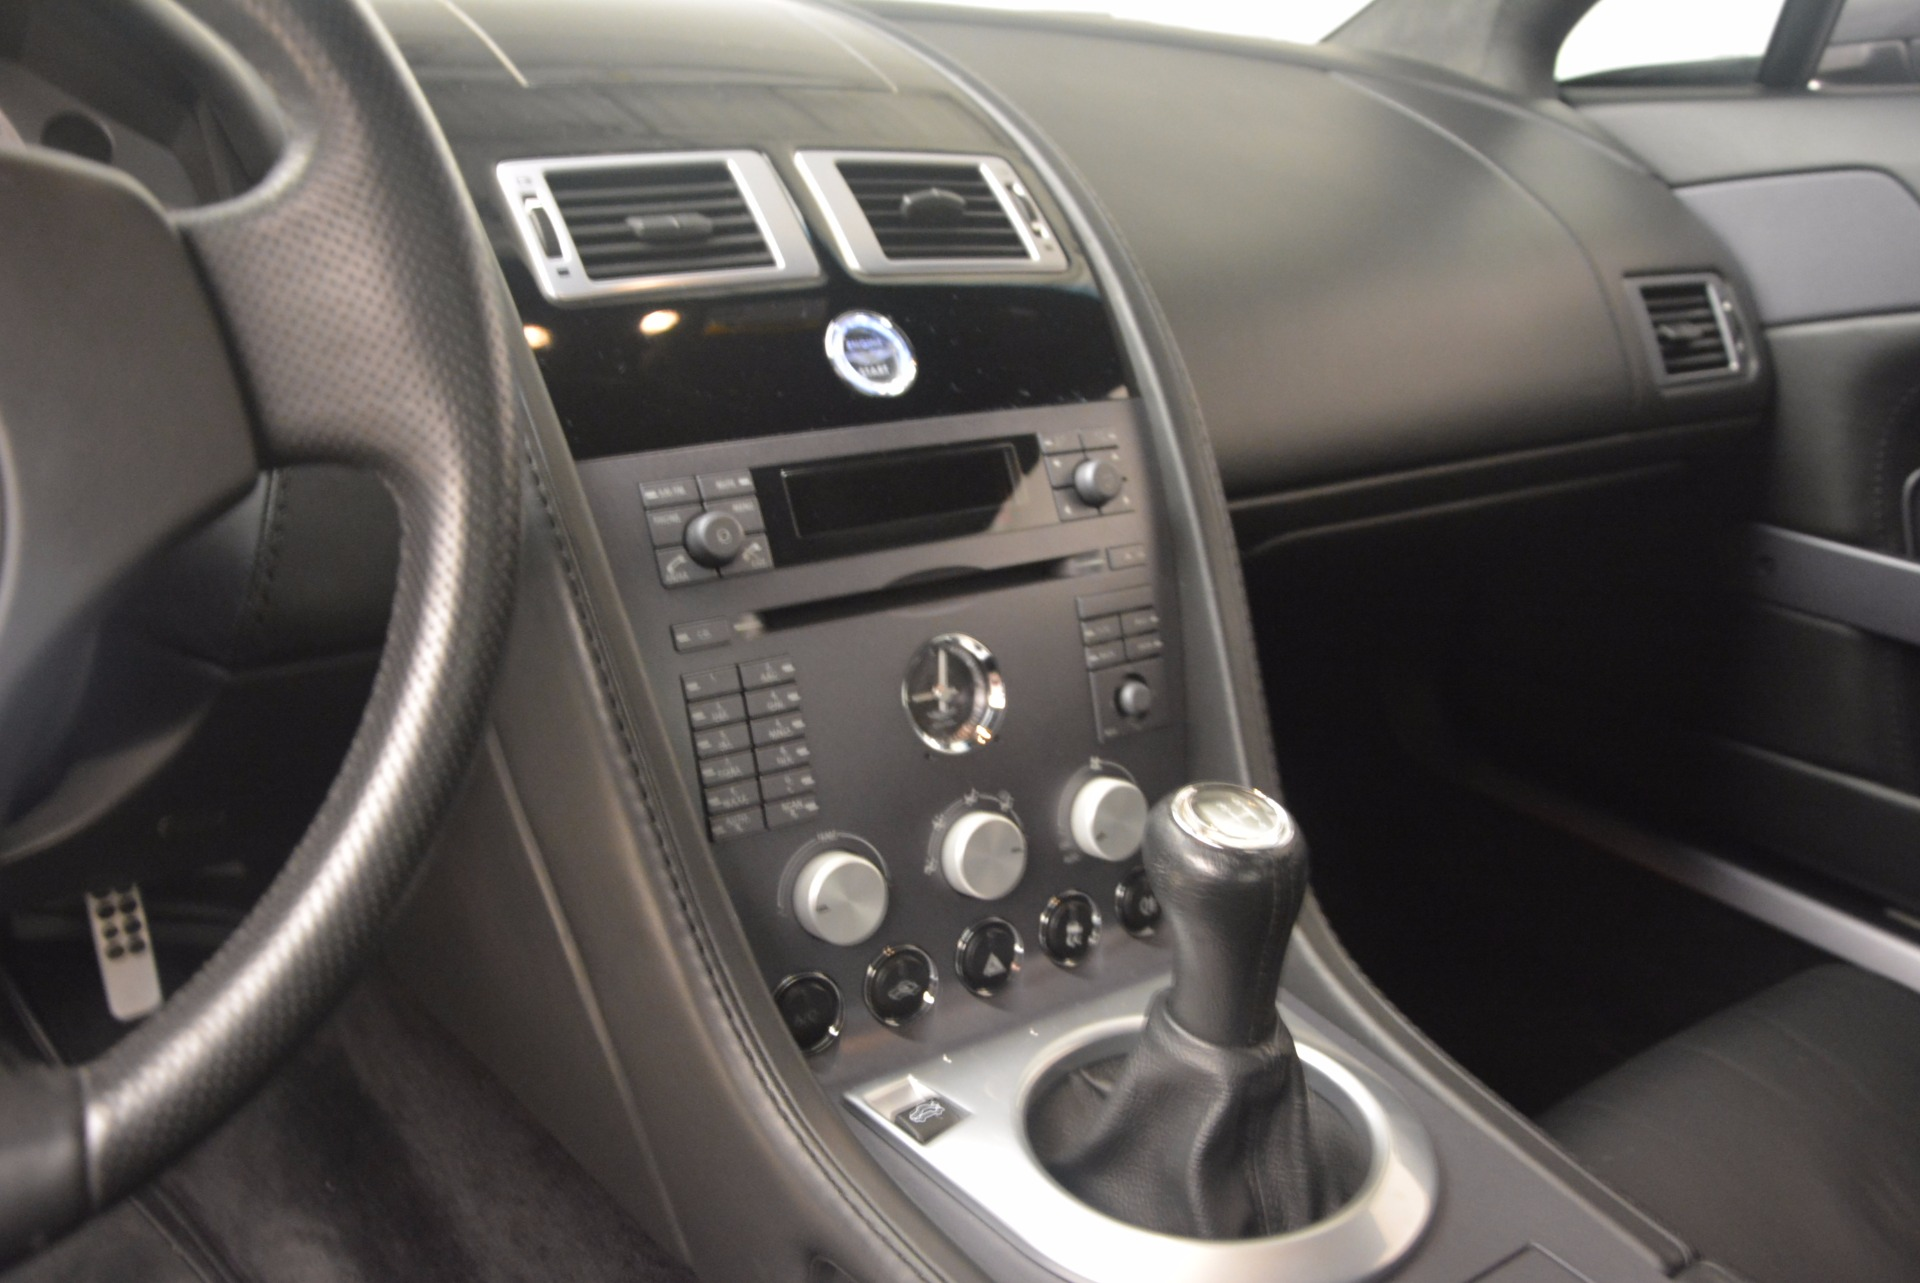 Used 2006 Aston Martin V8 Vantage Coupe  For Sale In Westport, CT 1180_p16